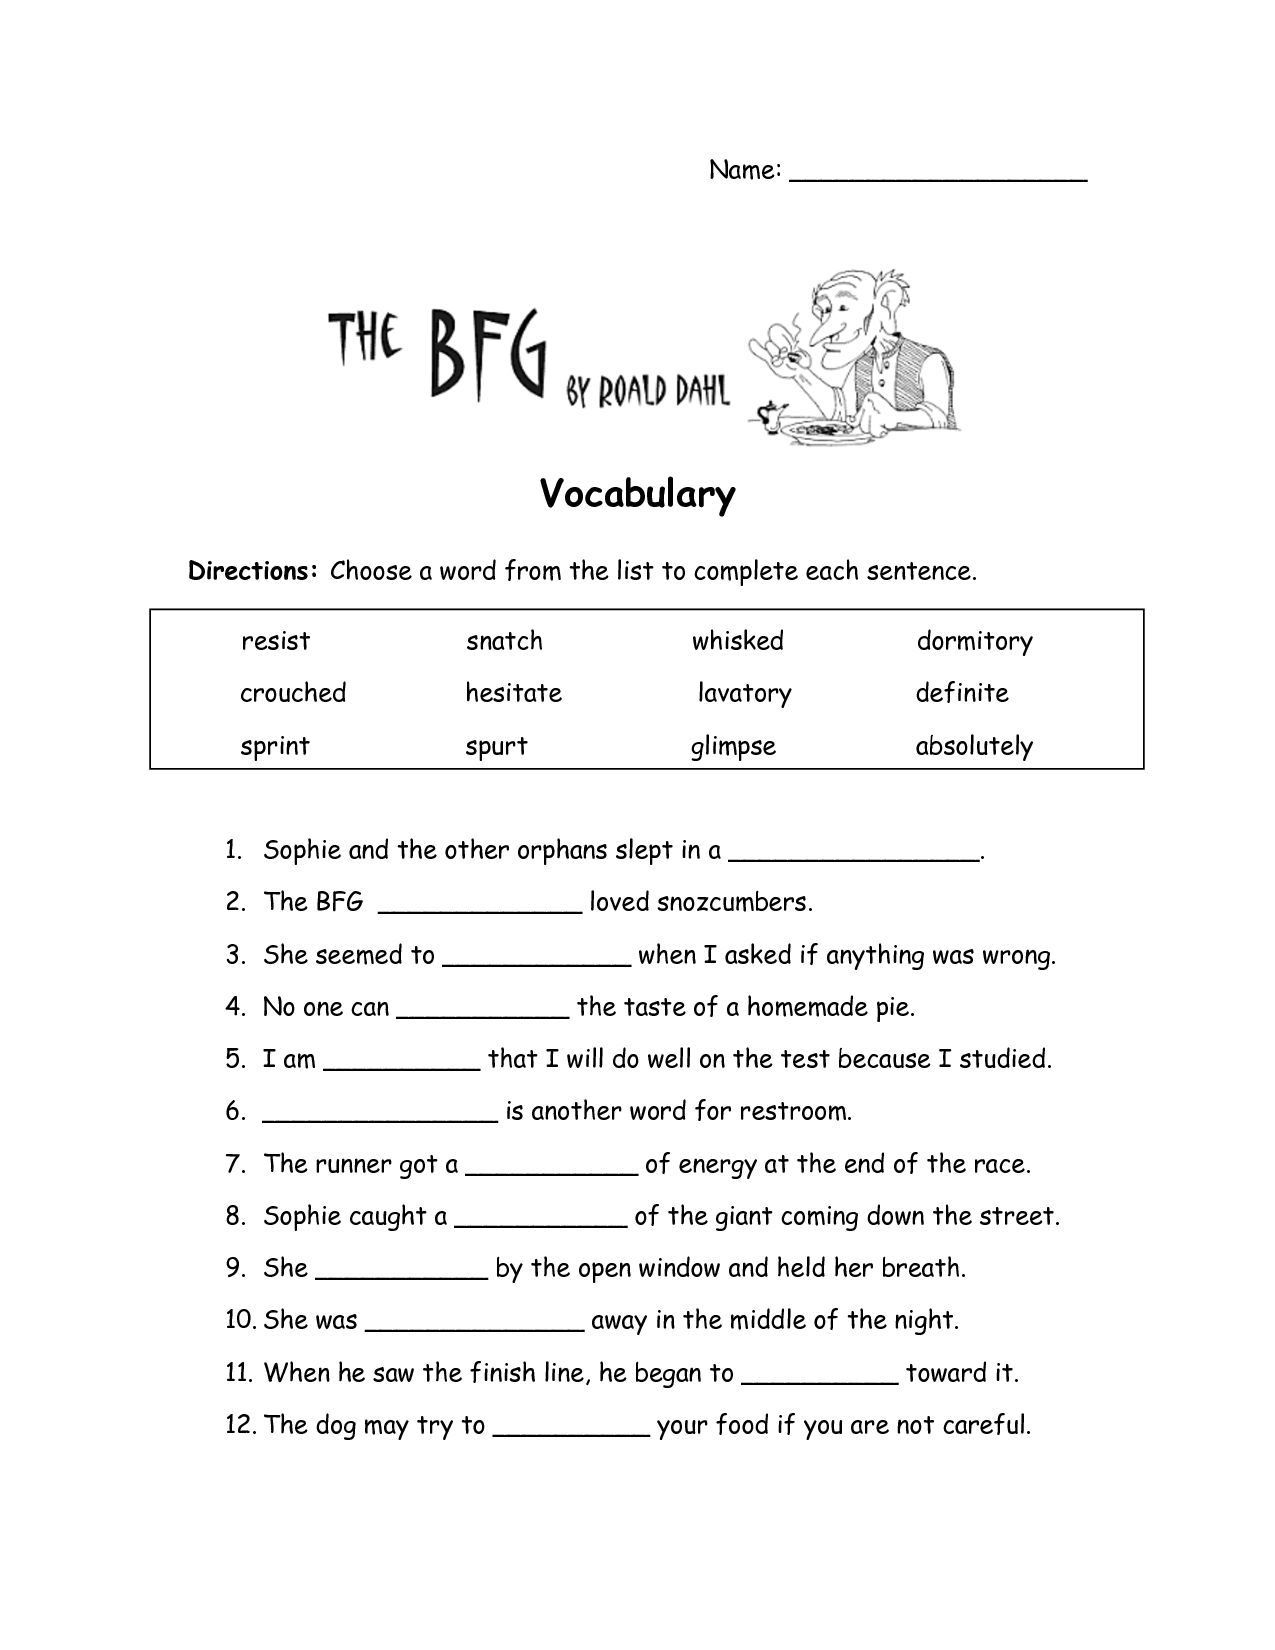 13 Best Images Of Sculpture Vocabulary Worksheet